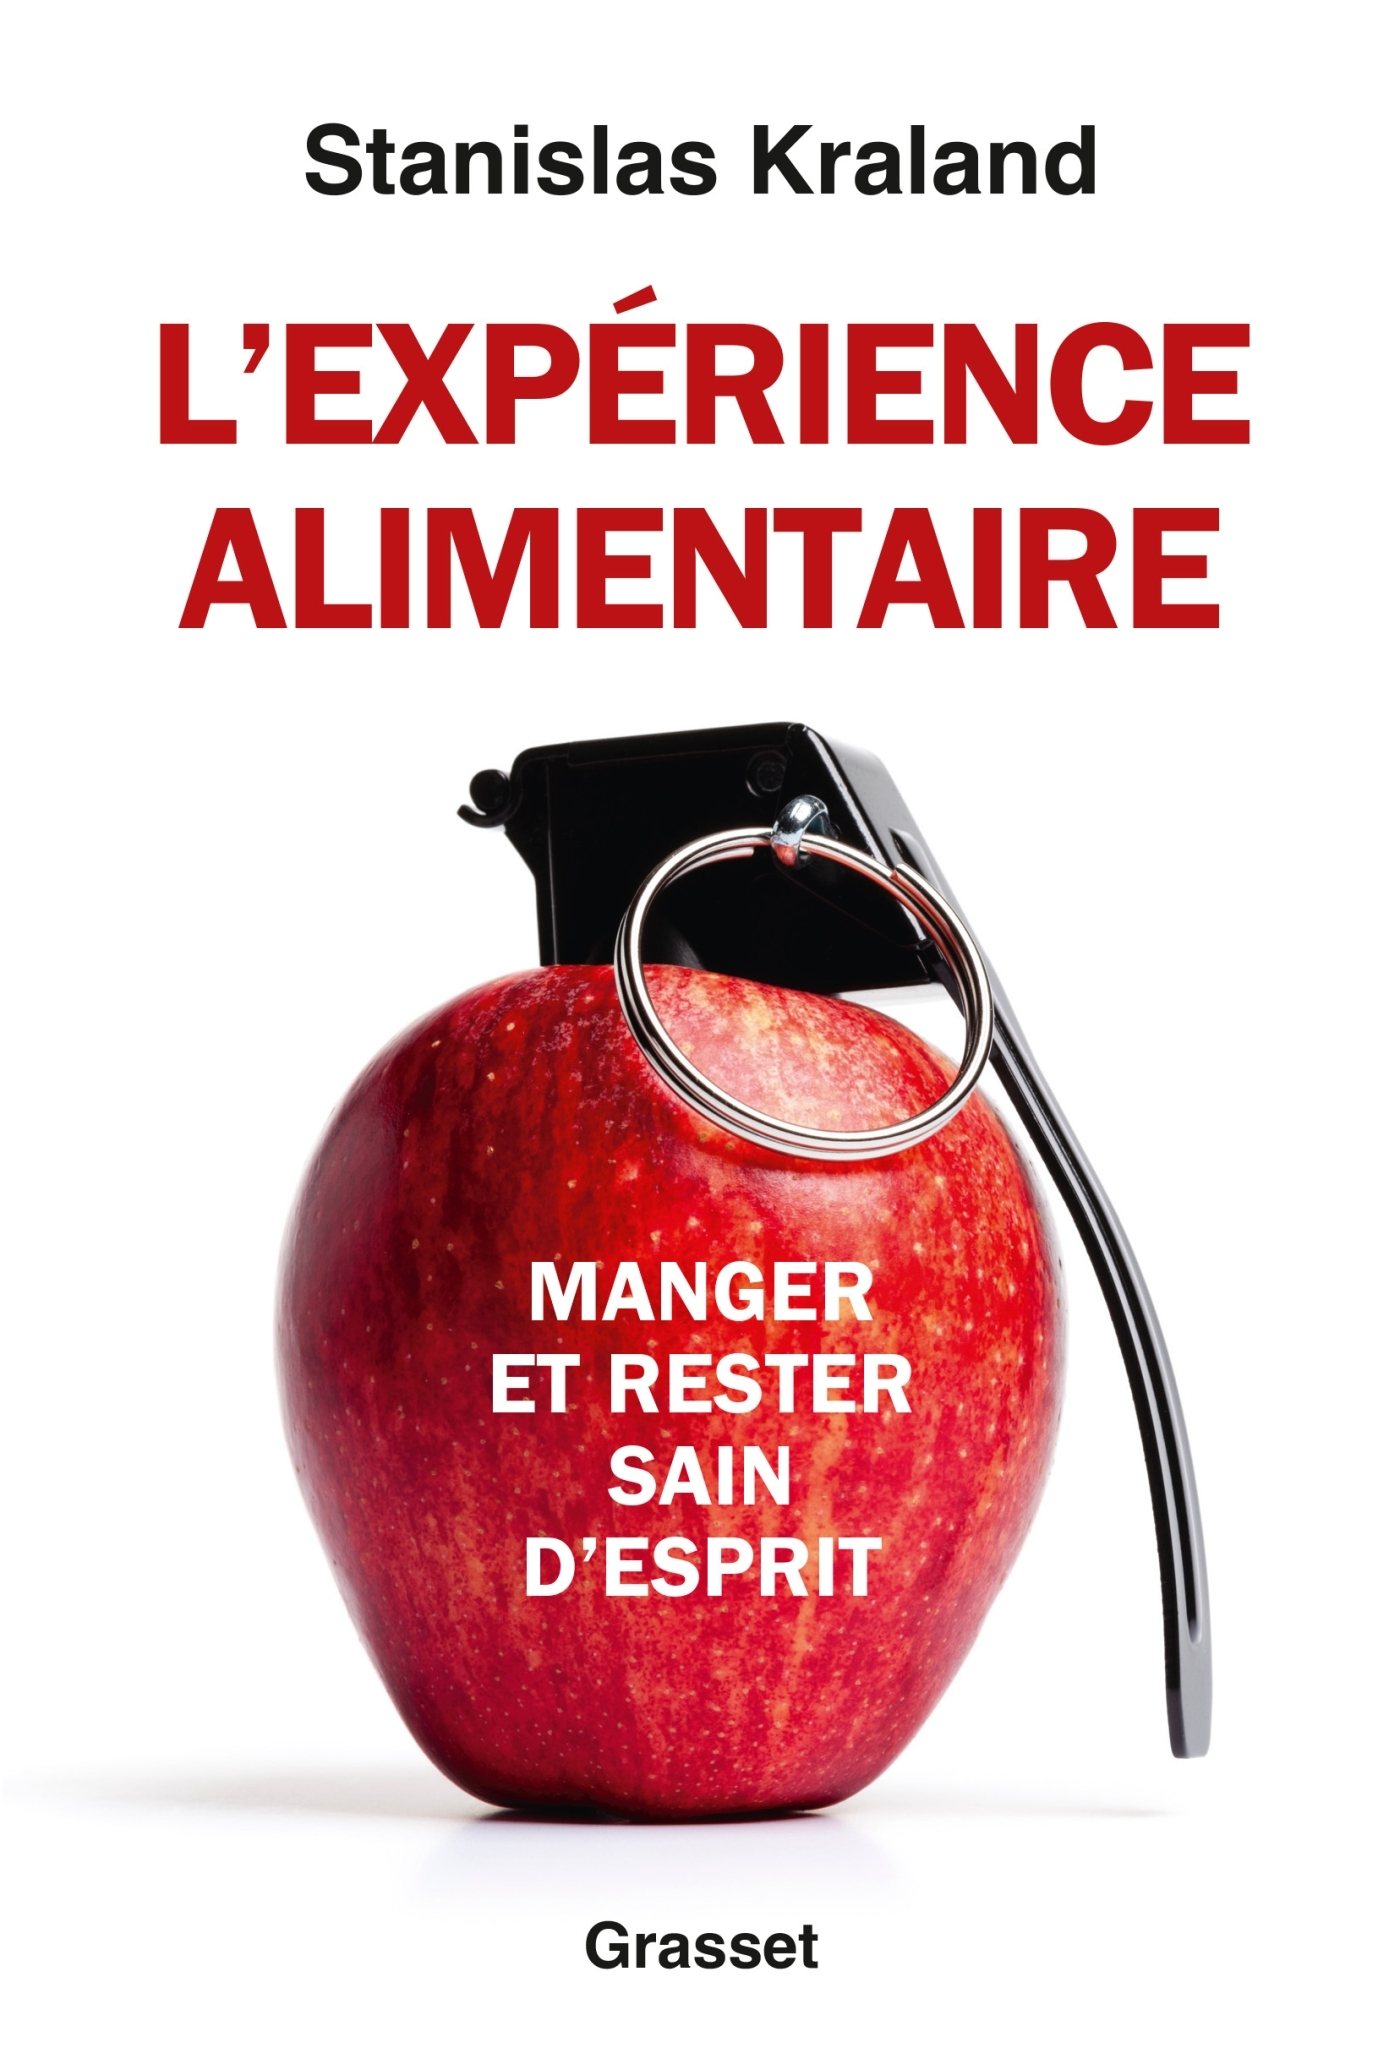 L'EXPERIENCE ALIMENTAIRE